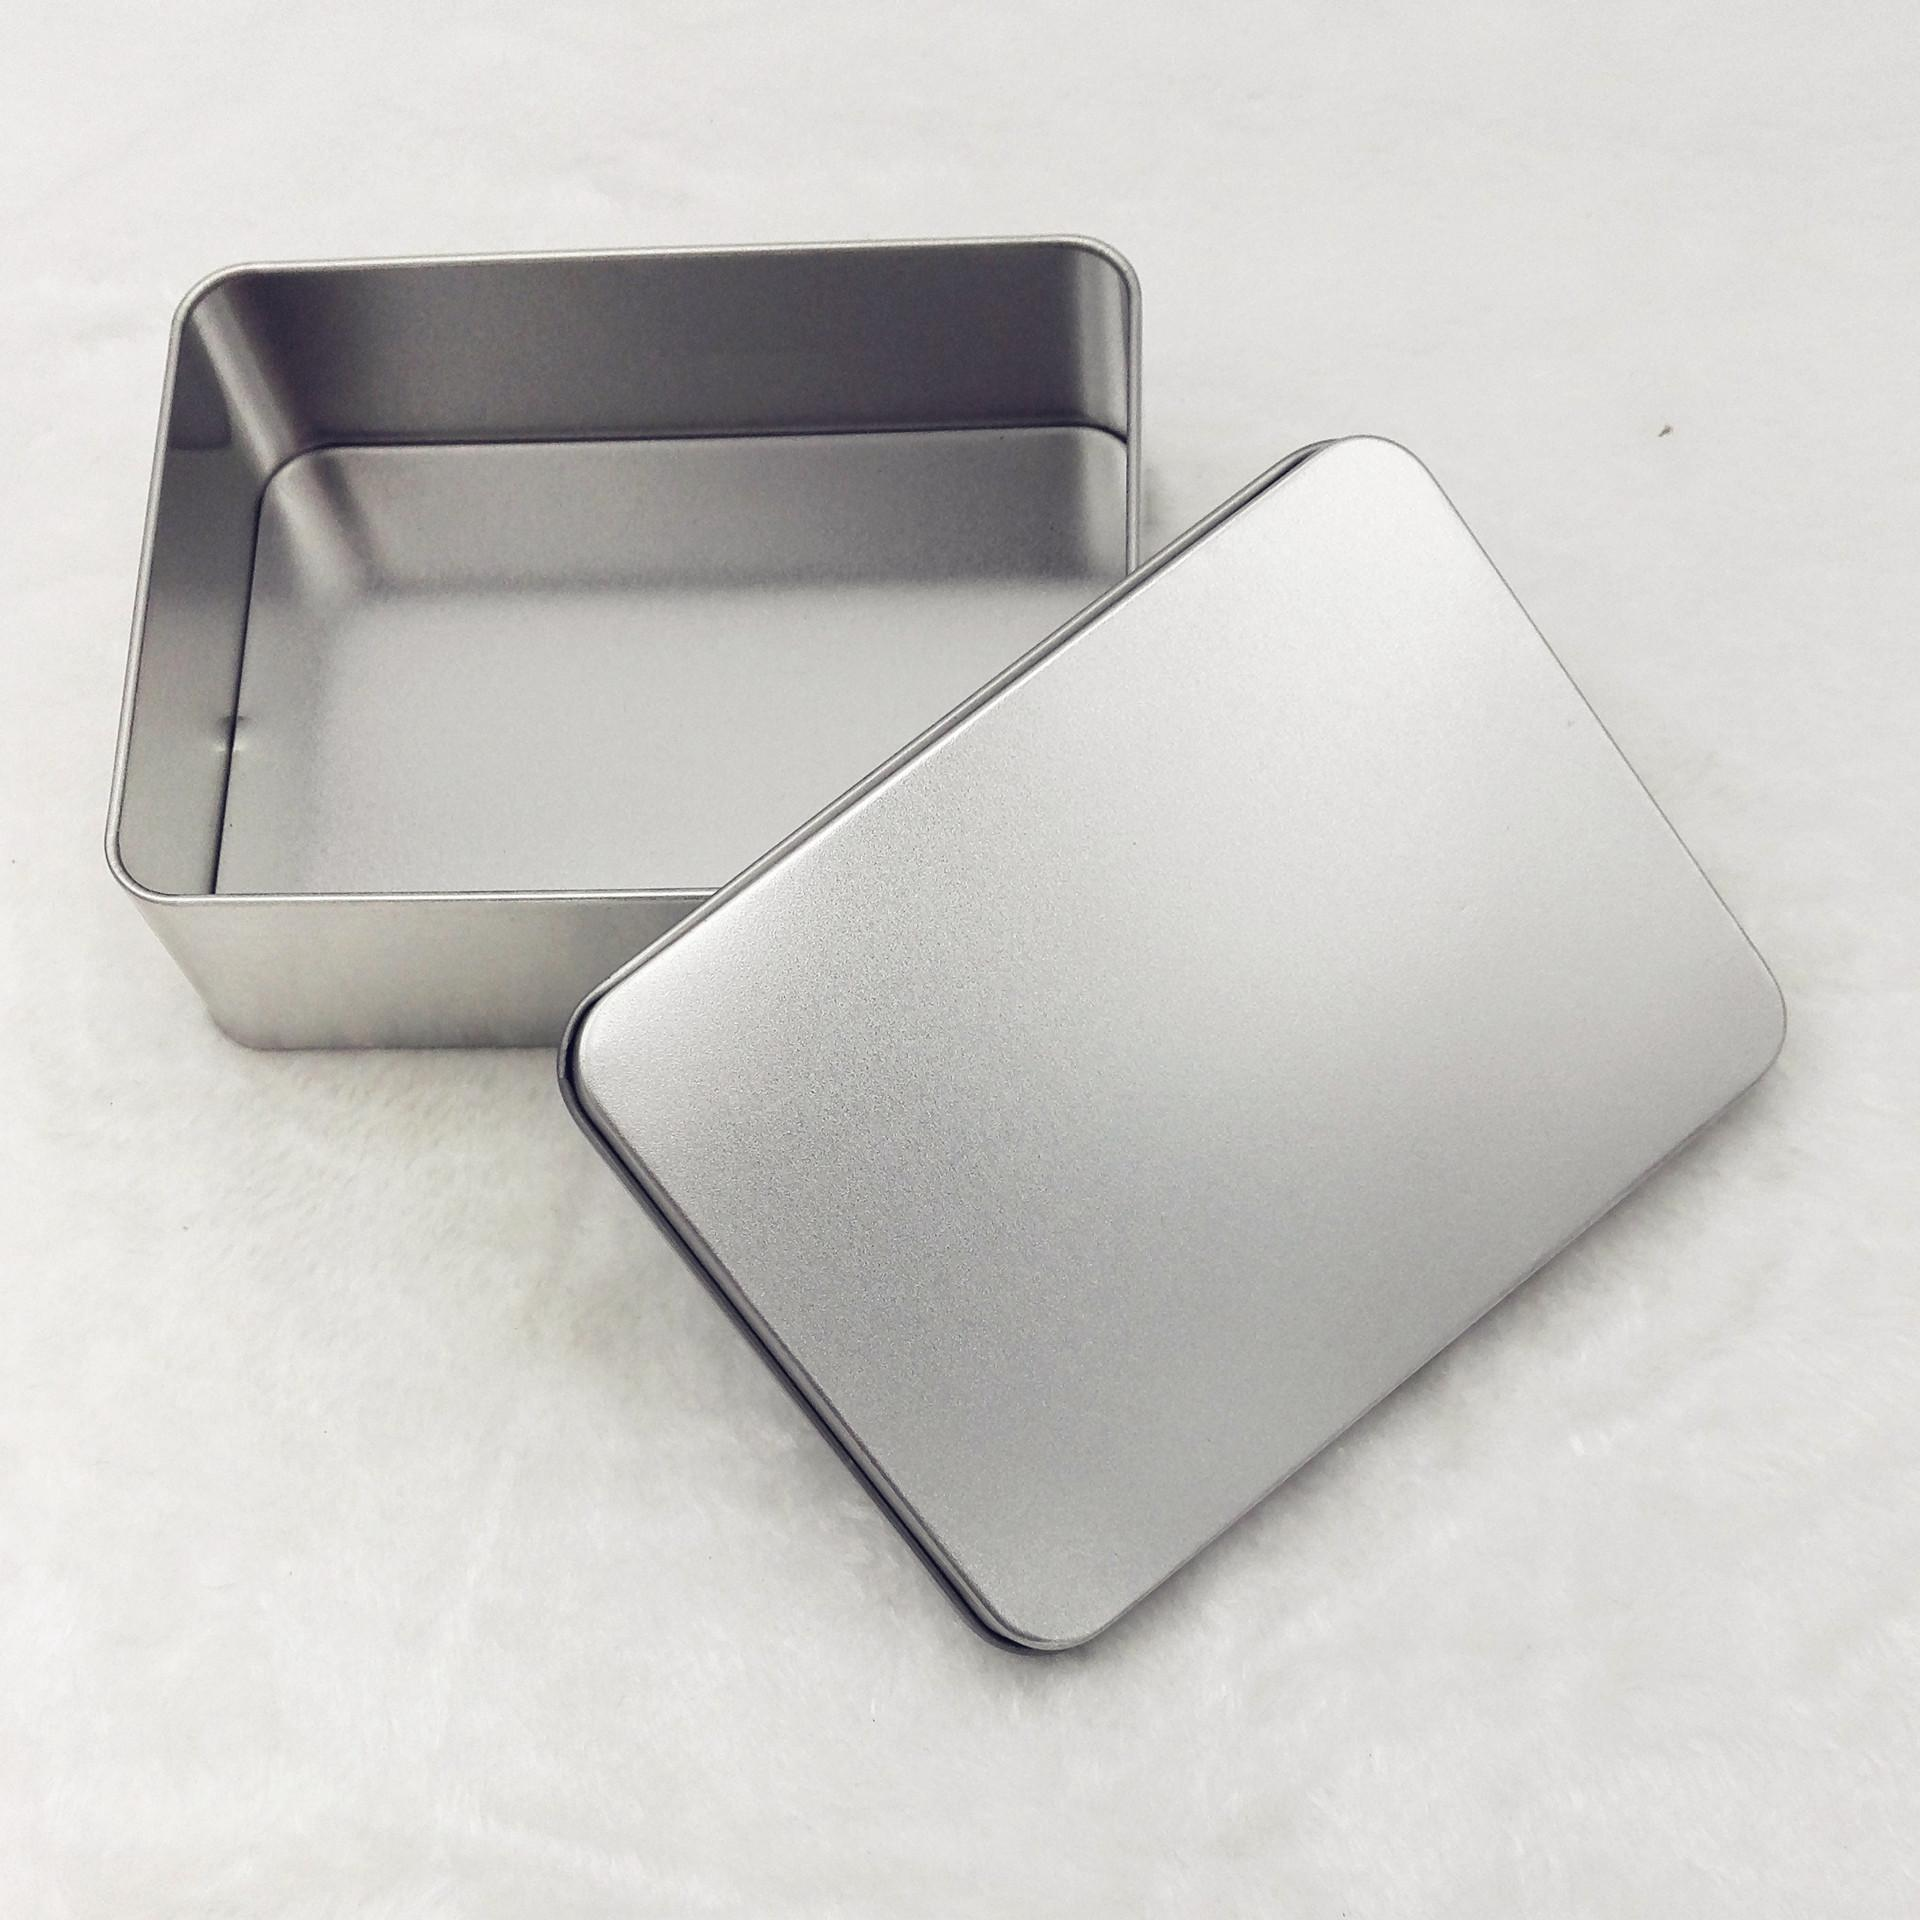 12cm 9cm 4cm tin container storage box metal rectangle for beads